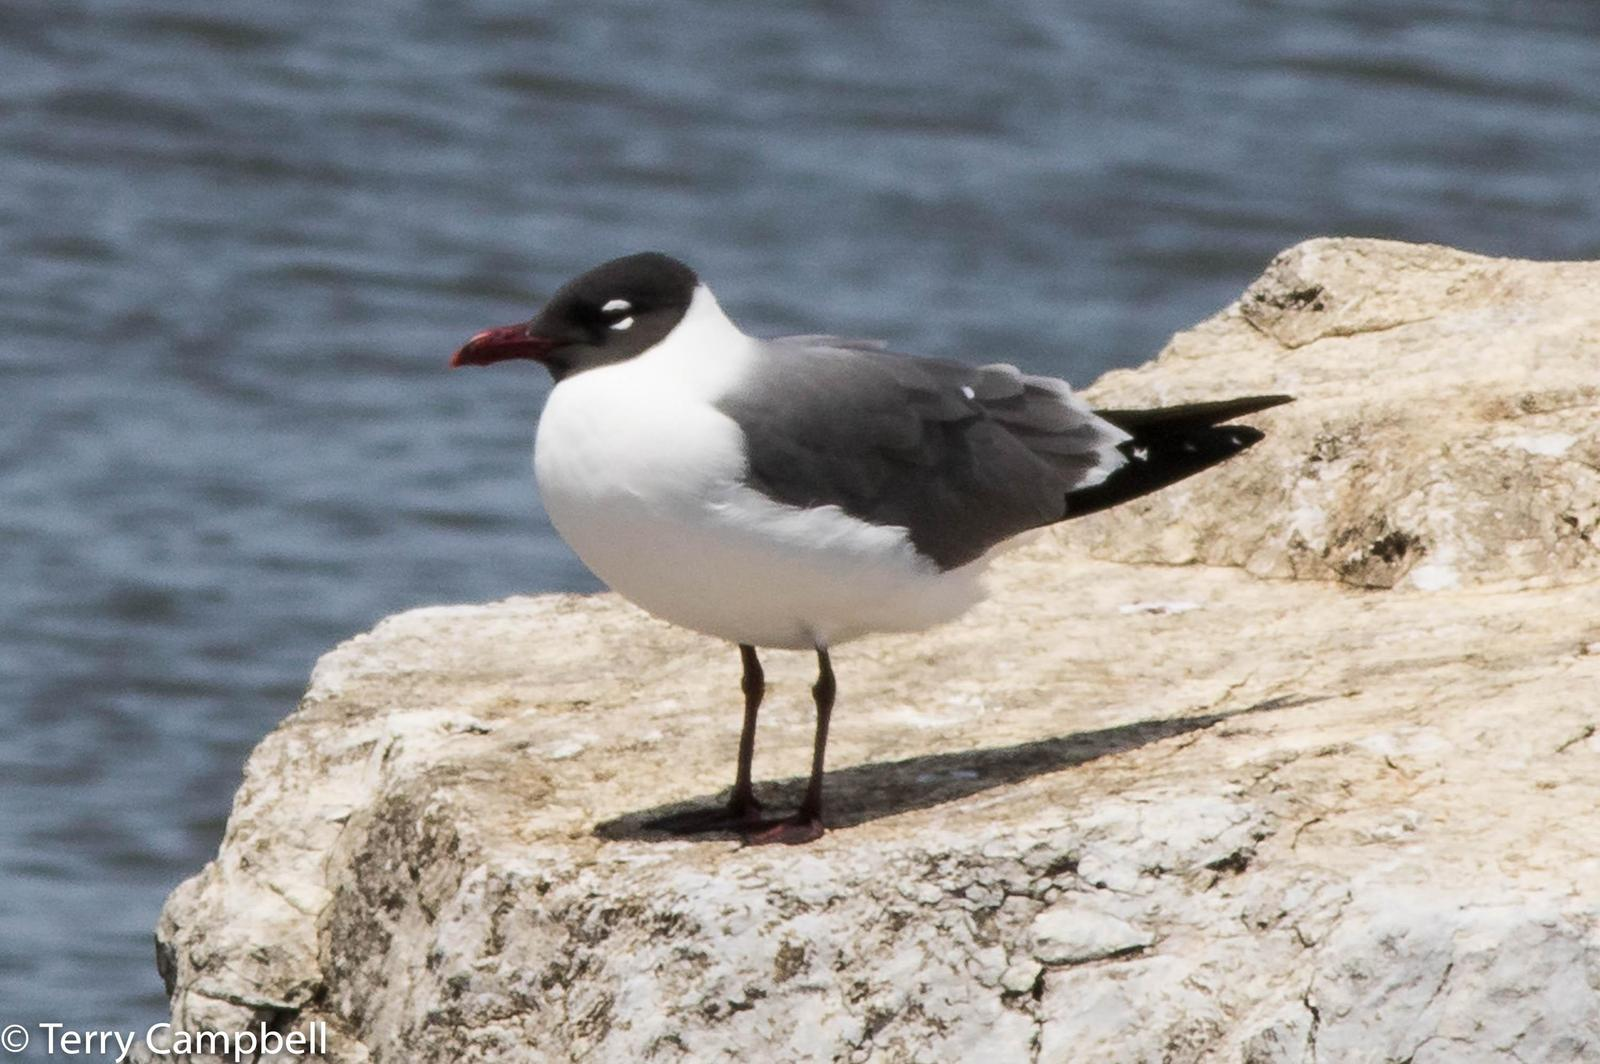 Laughing Gull Photo by Terry Campbell